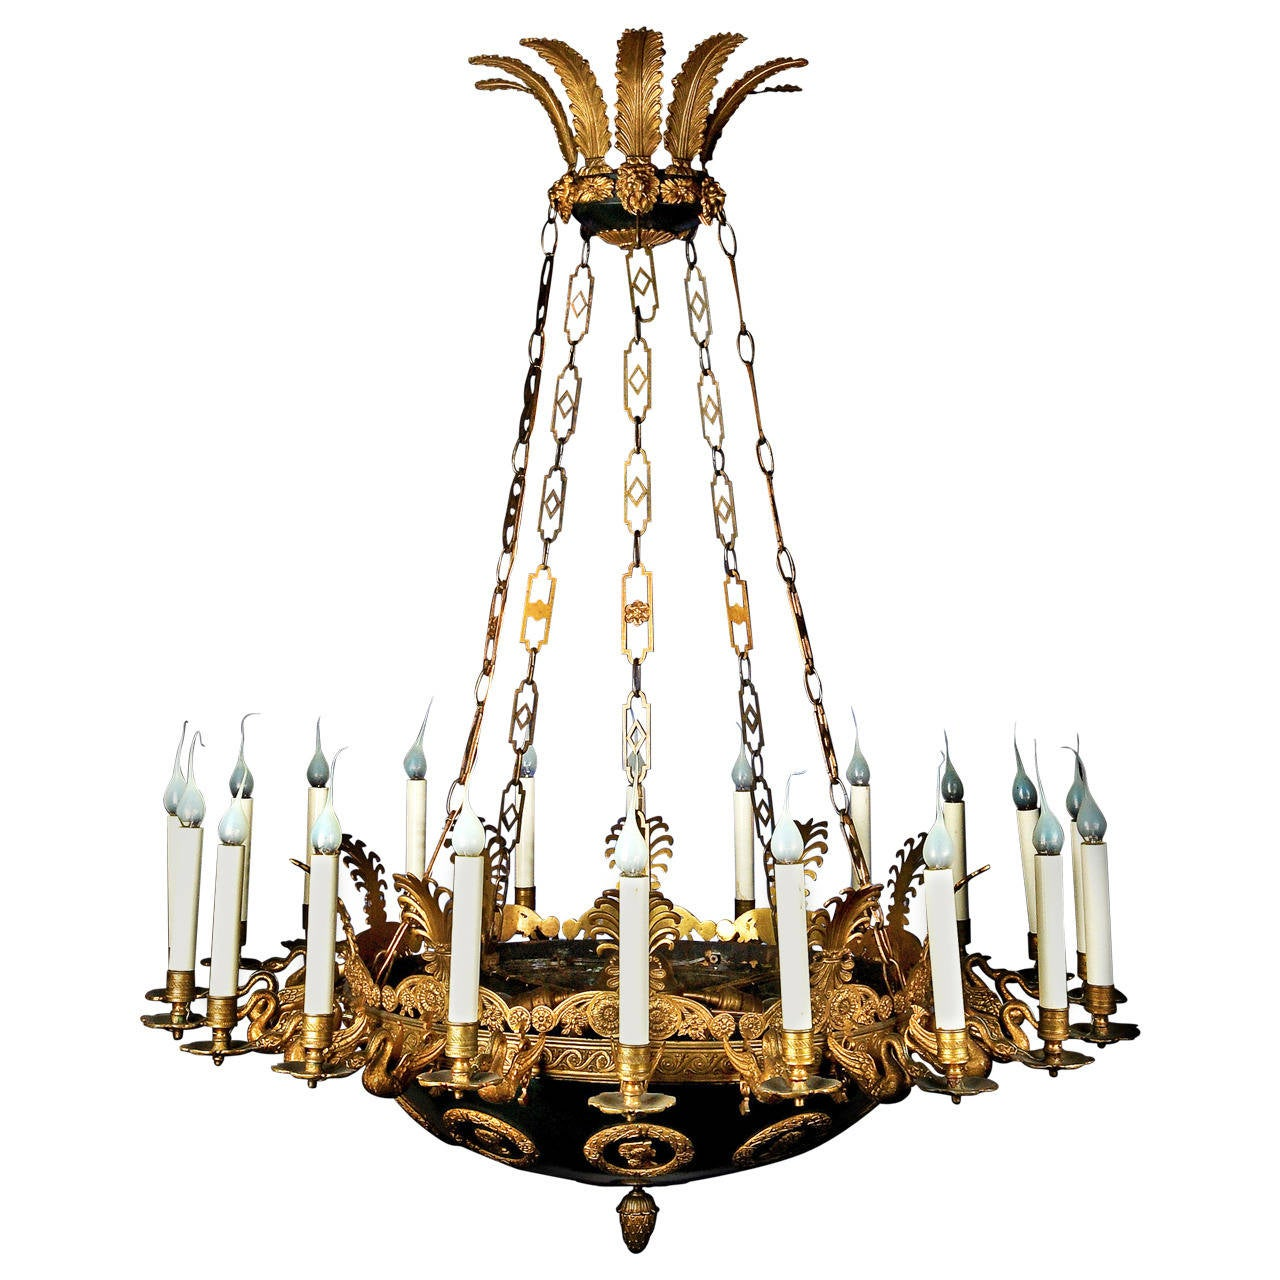 Impressive and Large Antique French Empire Gilt and Patina Bronze Chandelier - Antique French Empire Ormulu And Baccarat Crystal Chandelier For